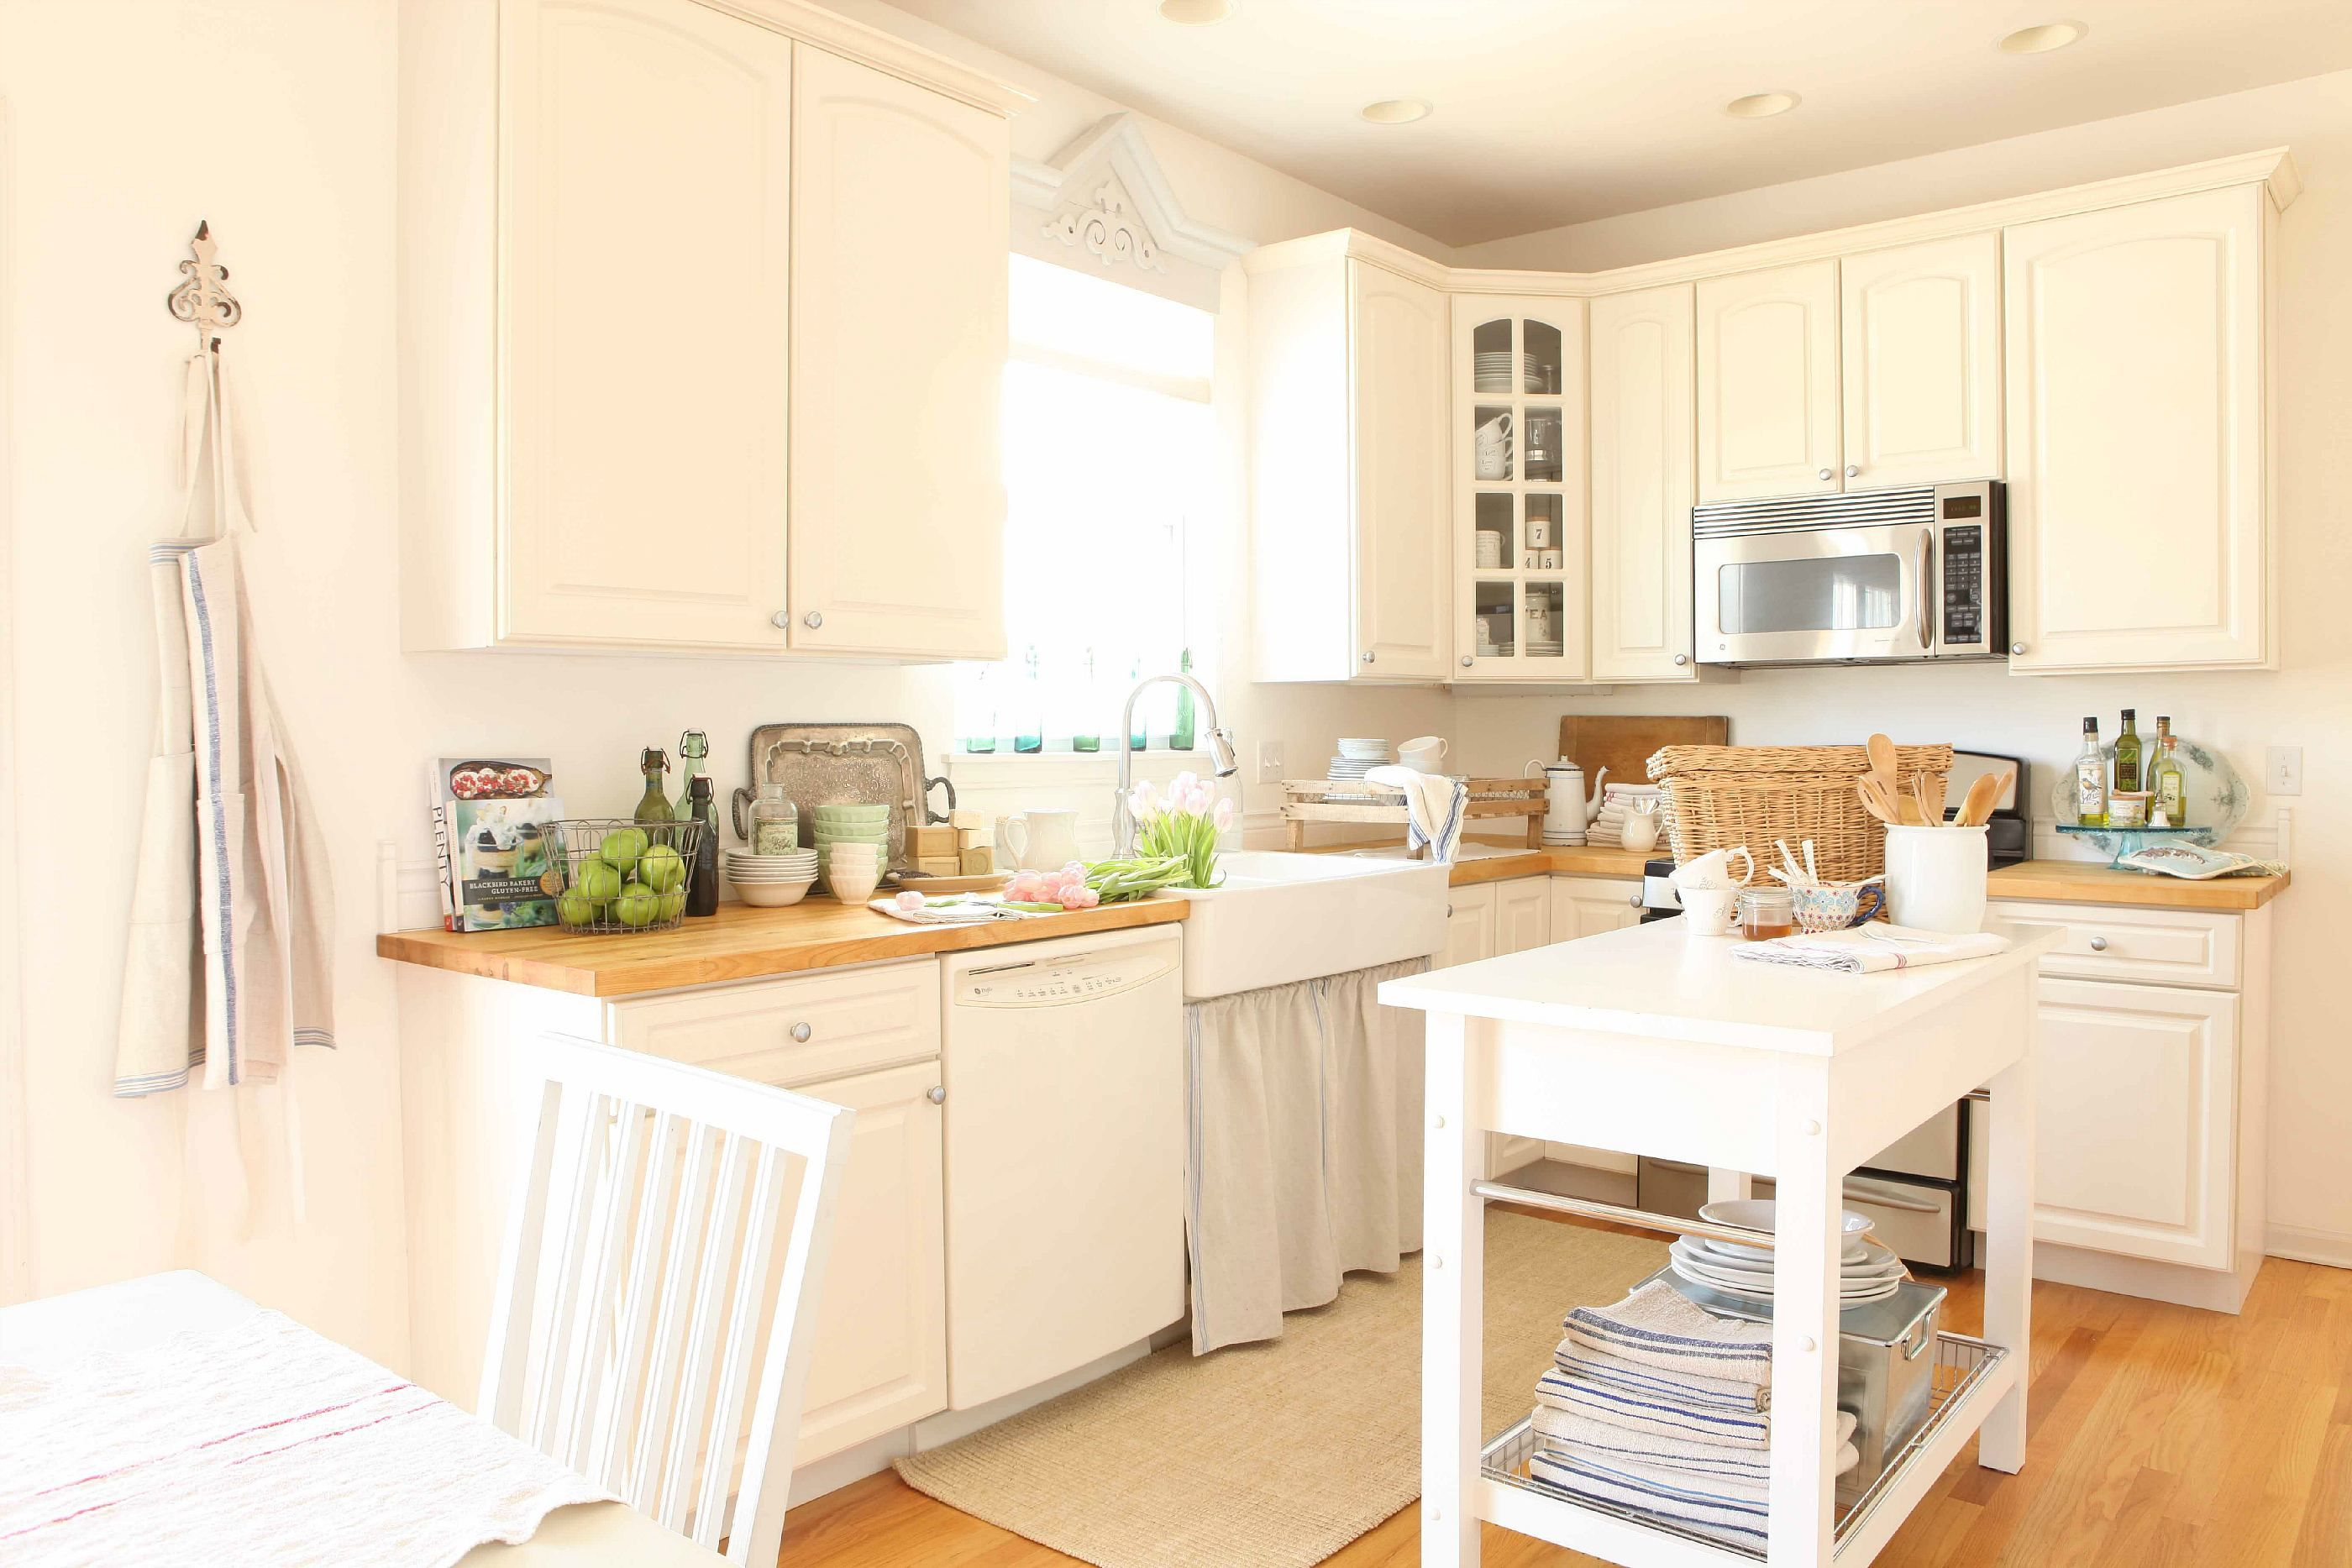 My kitchen...wood countertops and farmhouse sink from Ikea